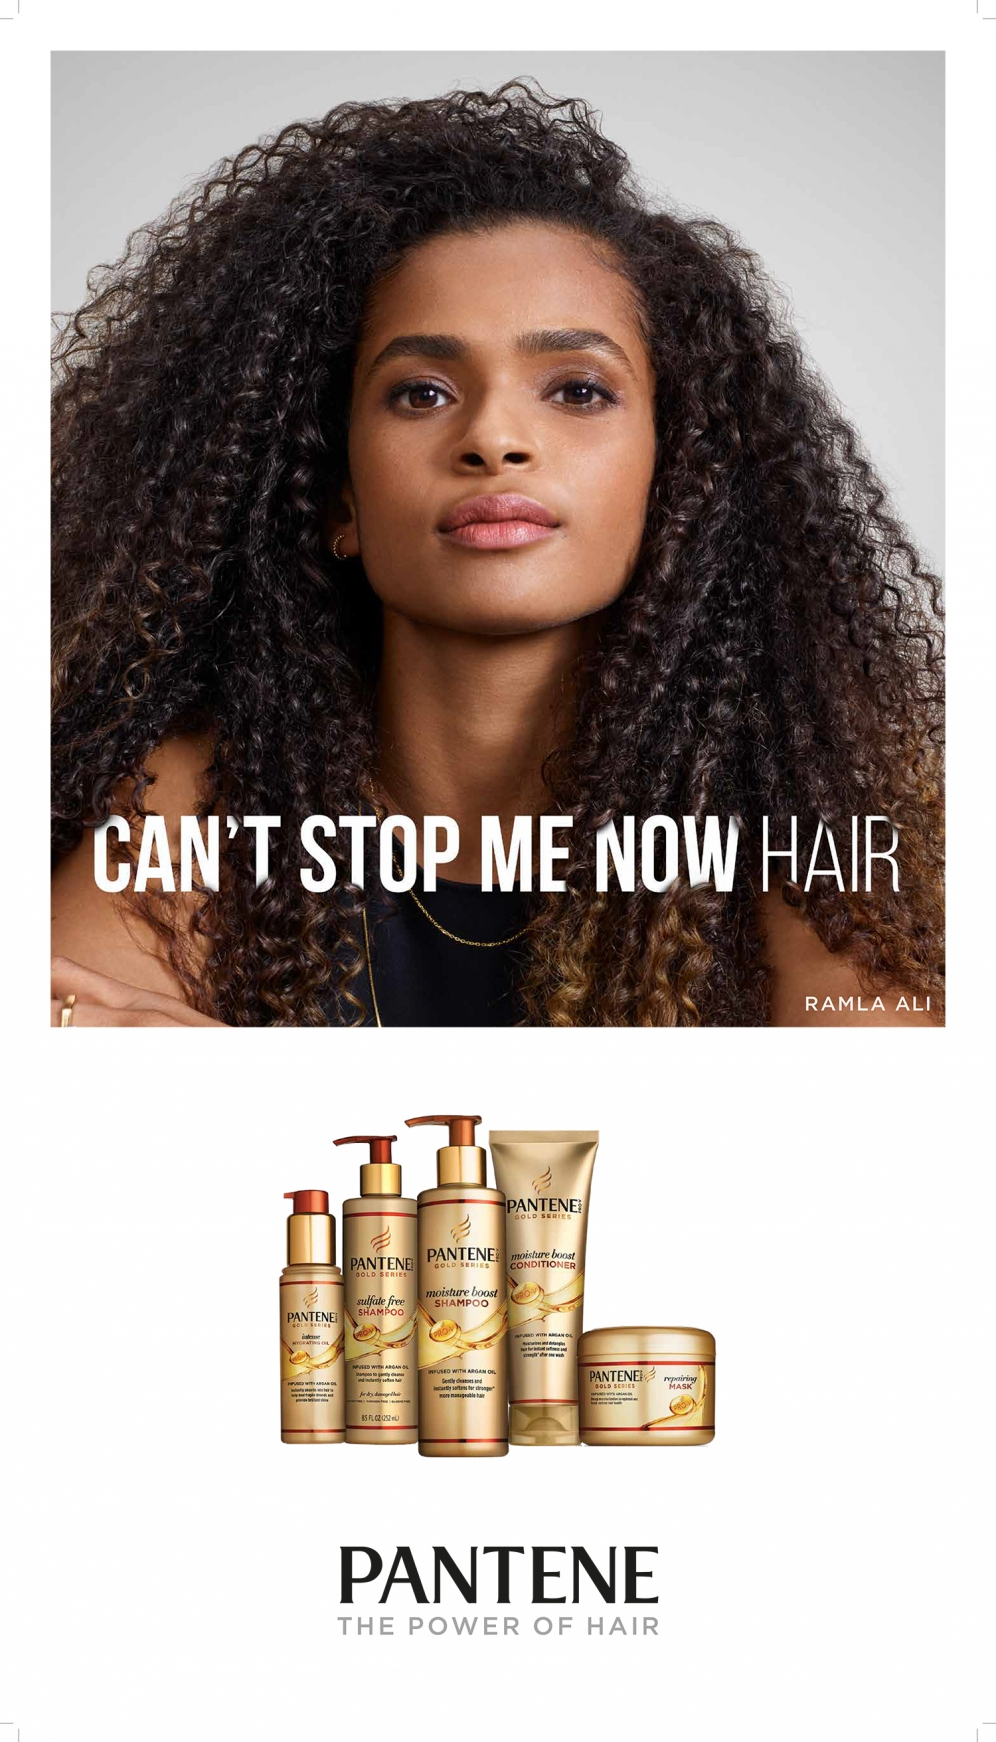 The Power of Hair | Pantene